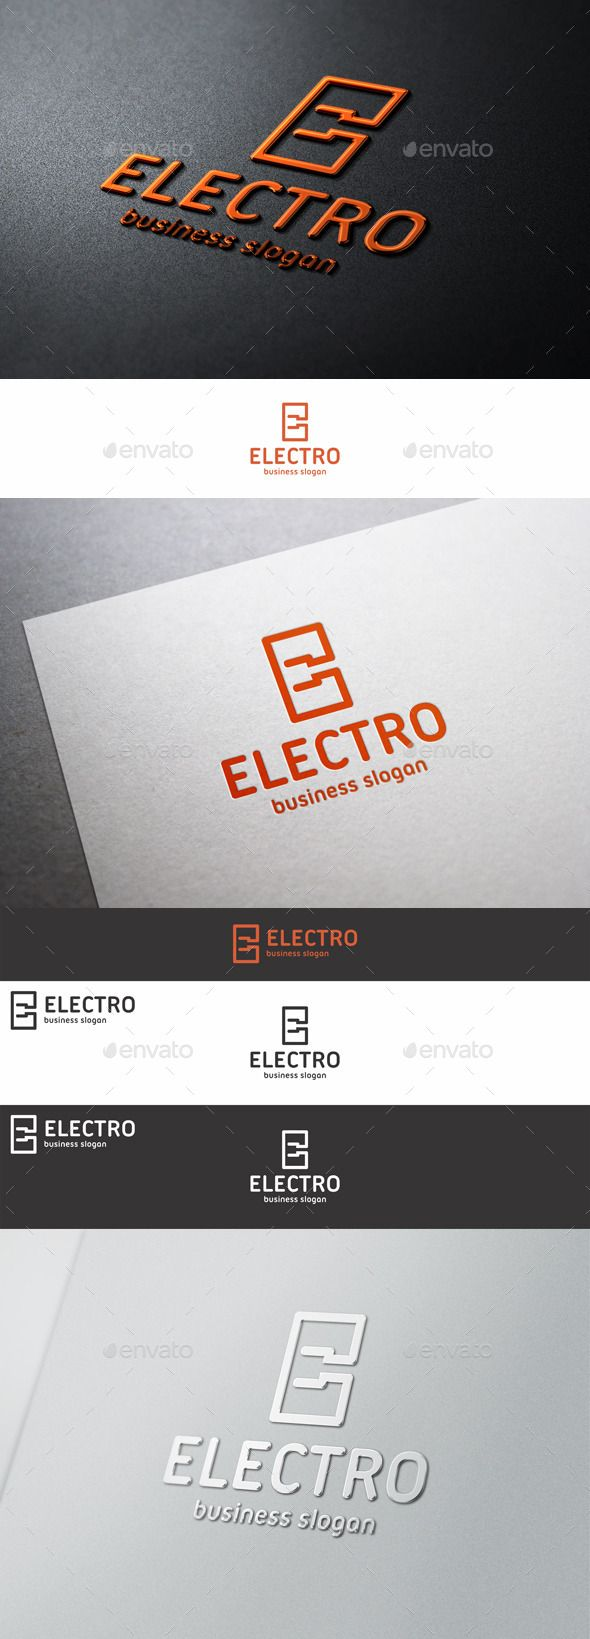 Electro Plug Logo E Letter  — EPS Template #cable #media • Download ➝ https://graphicriver.net/item/electro-plug-logo-e-letter/10069947?ref=pxcr